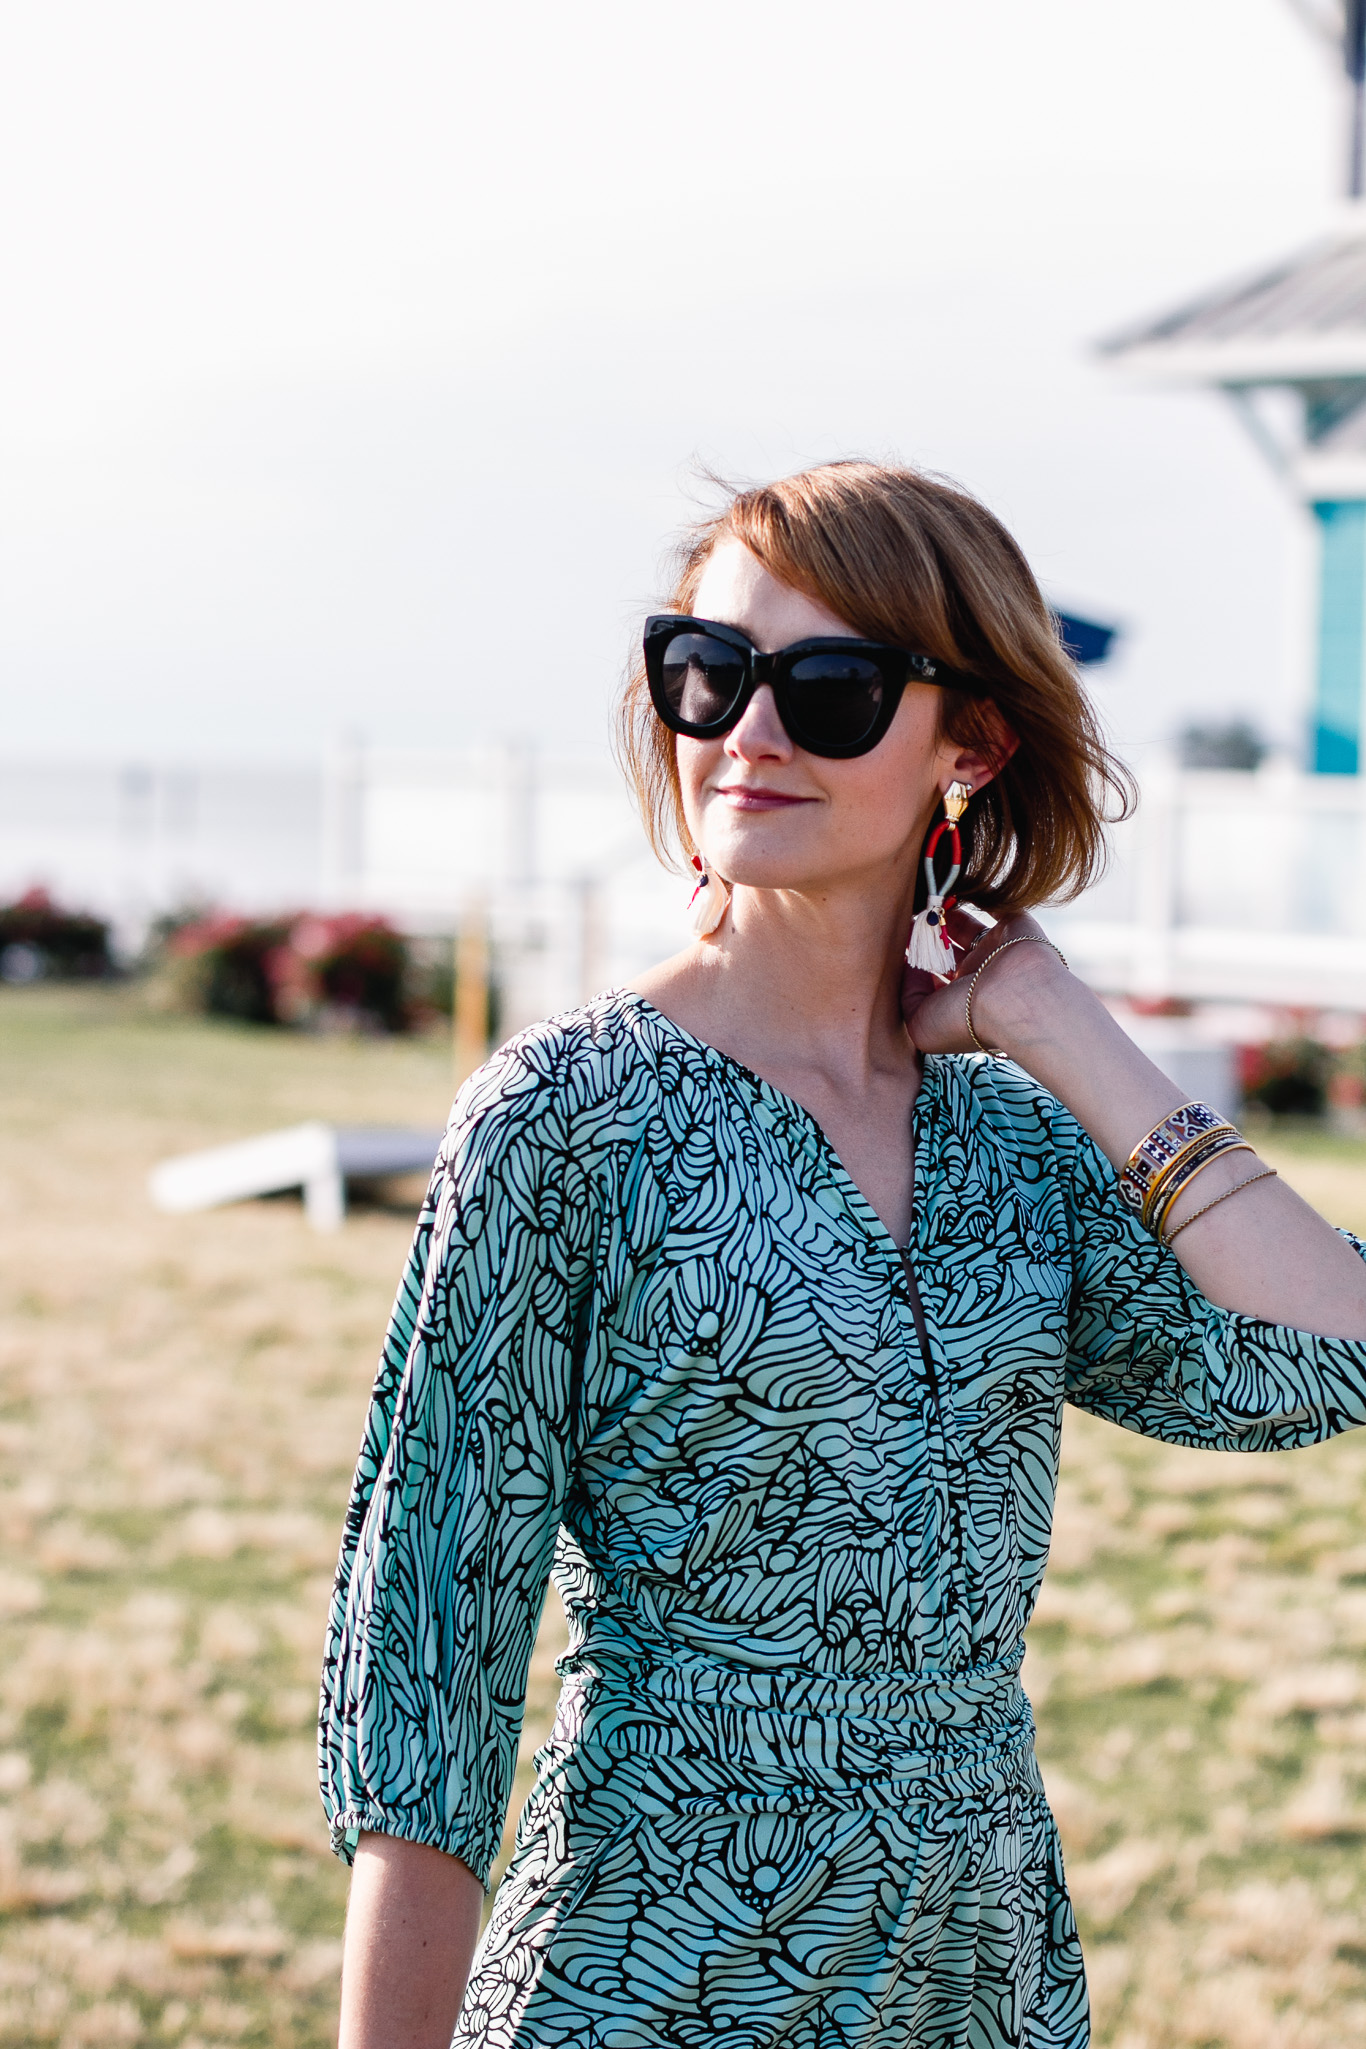 Quay sunglasses and Mara Hoffman mini dress